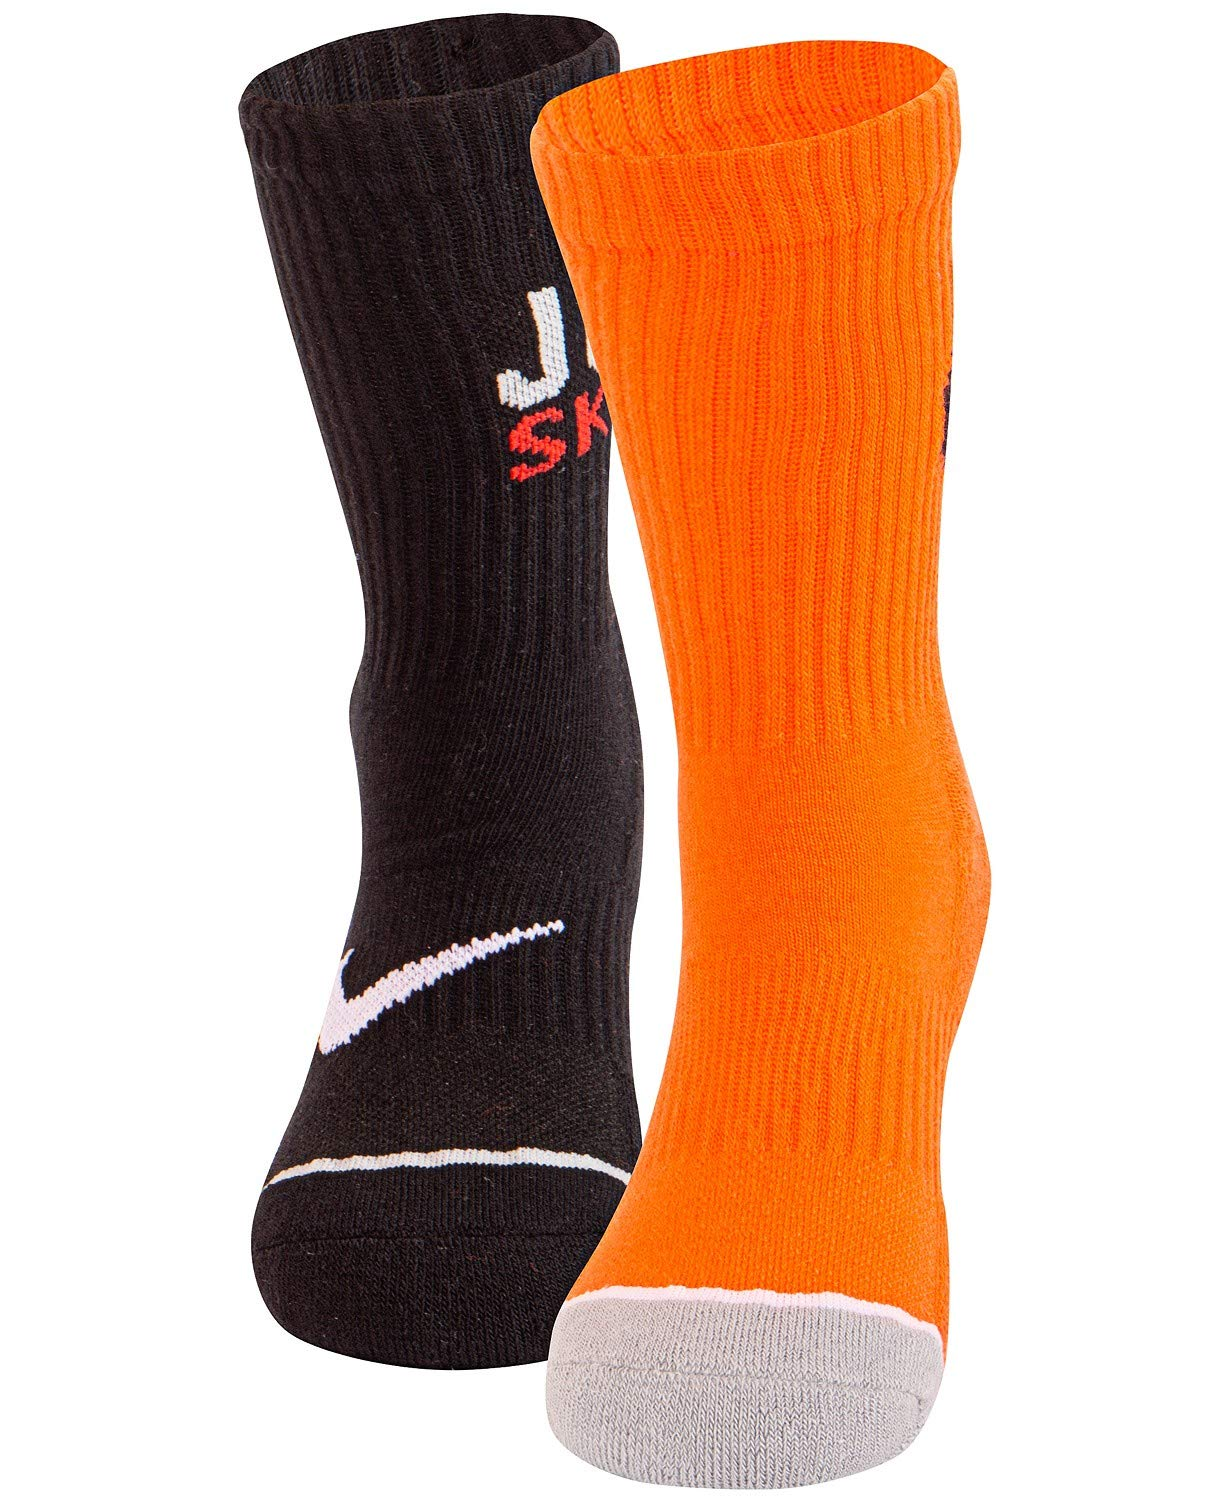 Nike Boy`s High Crew Socks, 2 Pack (Orange(UN0204-437)/Black, Youth Sock Size 5-6 (Kids' Shoe Size 9C-13C)) by Nike